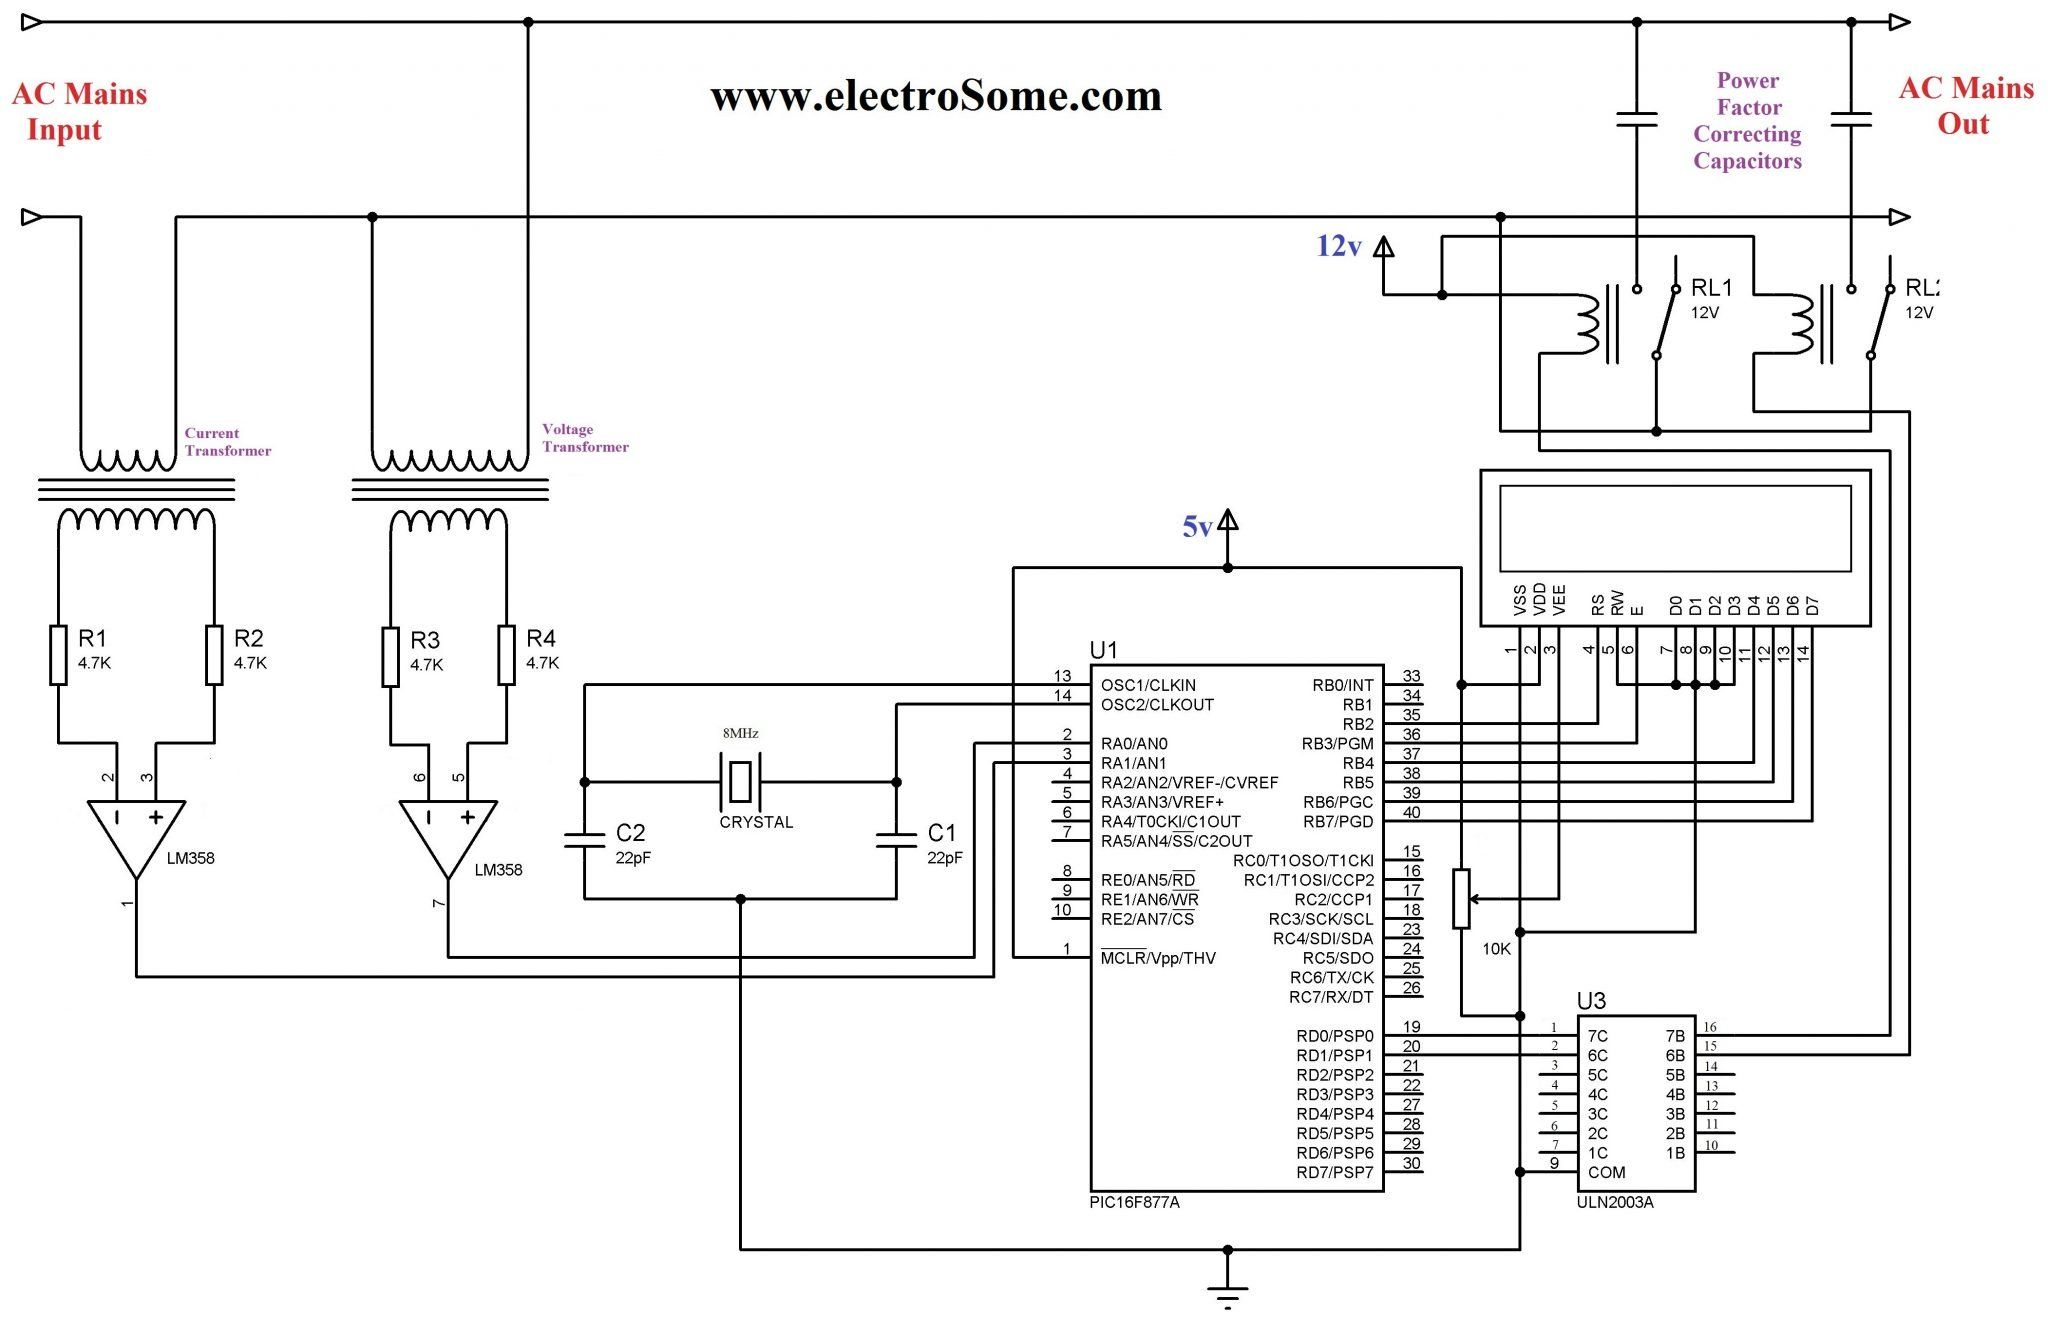 Fantastic Ups Relay Circuit Auto Electrical Wiring Diagram Wiring Cloud Rineaidewilluminateatxorg